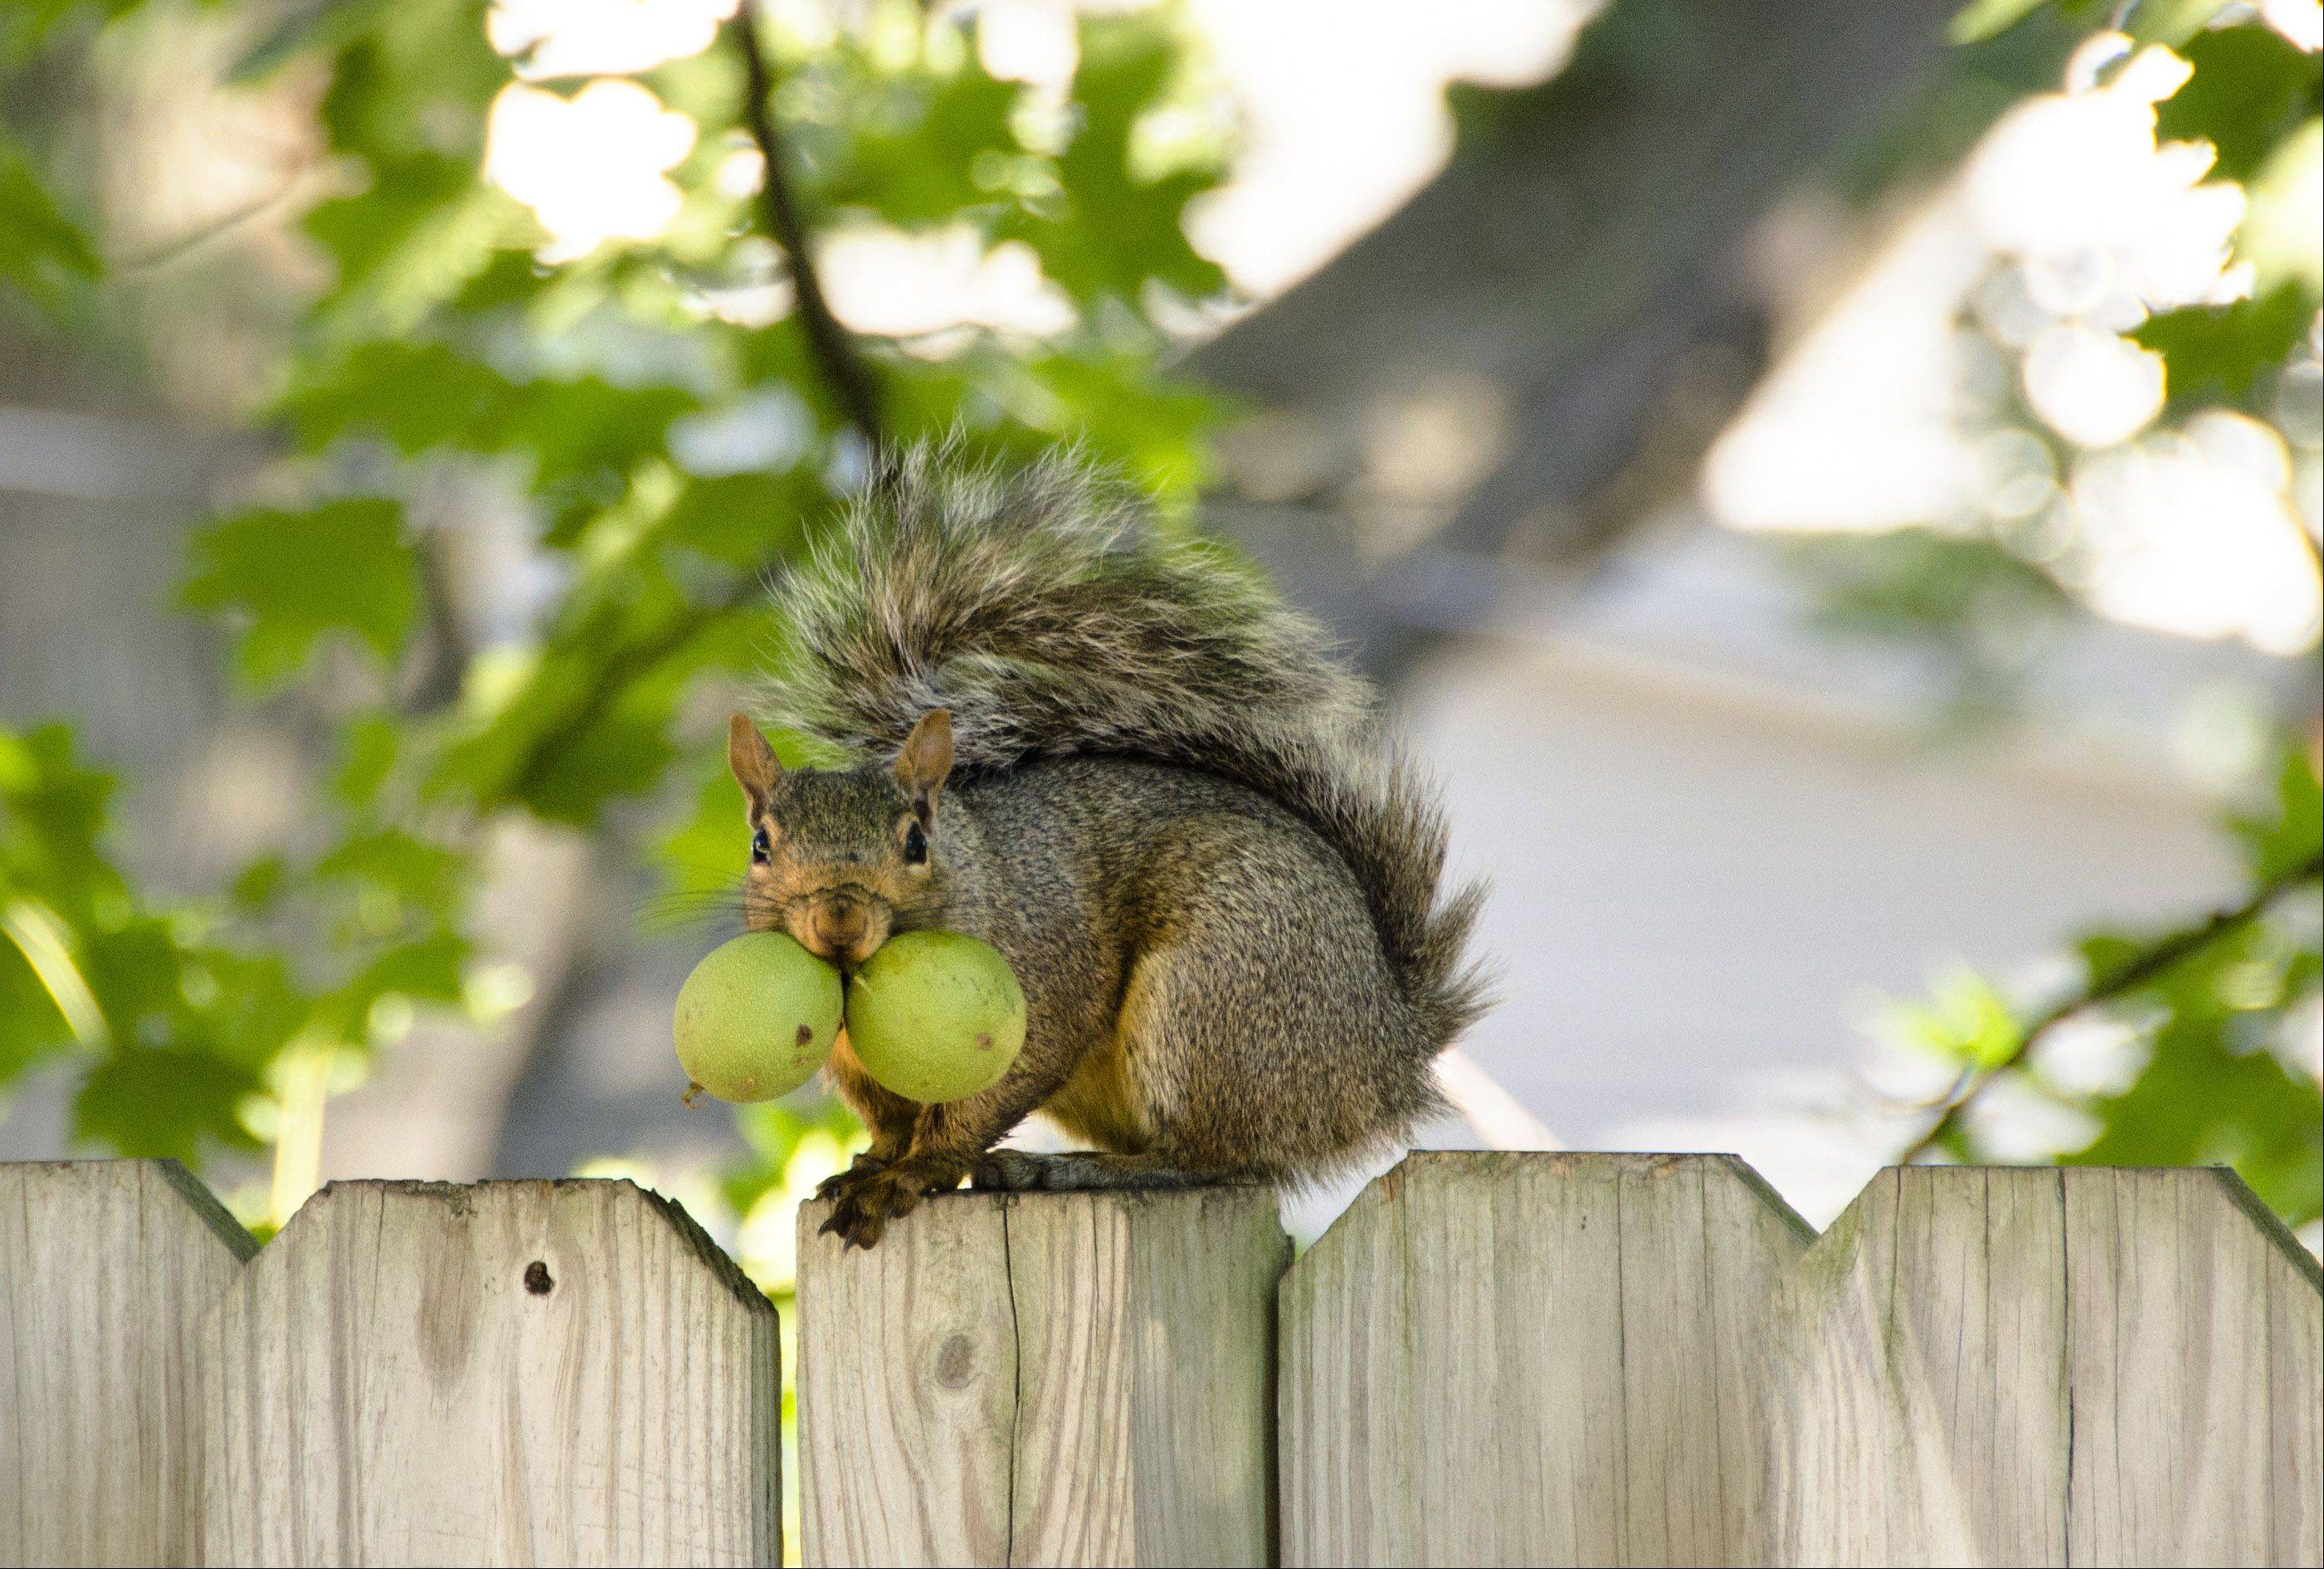 Mike Gross of Lombard says cooler weather has this ambitious squirrel stashing walnuts around his backyard.